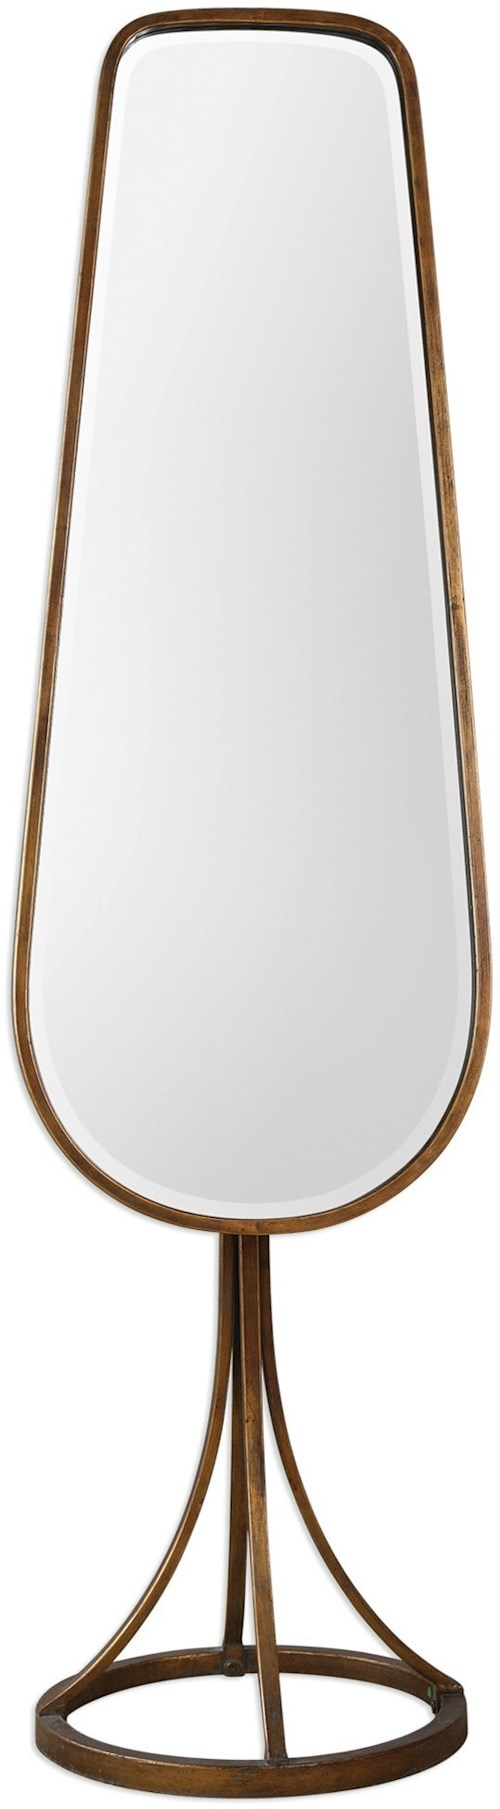 Uttermost Mirrors  Gavar Gold Cheval Mirror